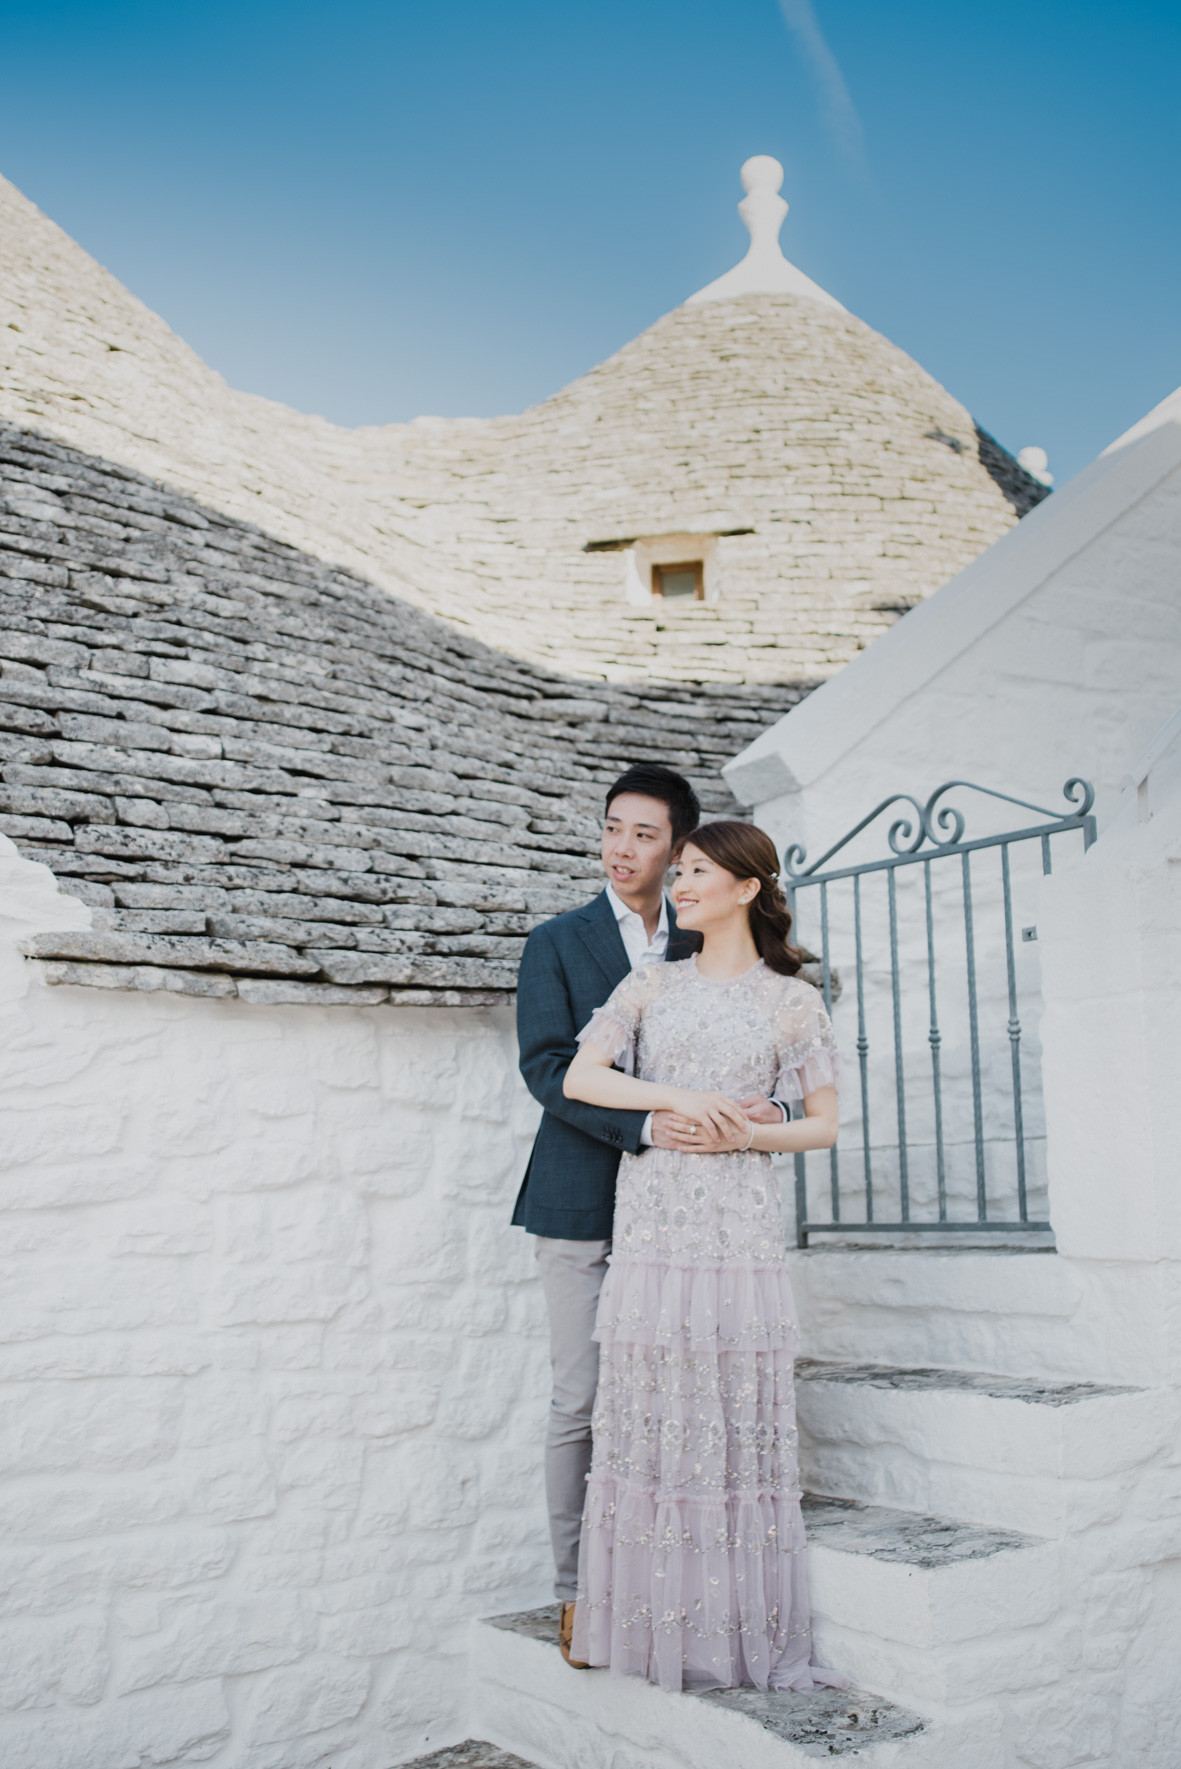 Pre wedding photographer in Puglia - Alberobello -  Andrea Antohi